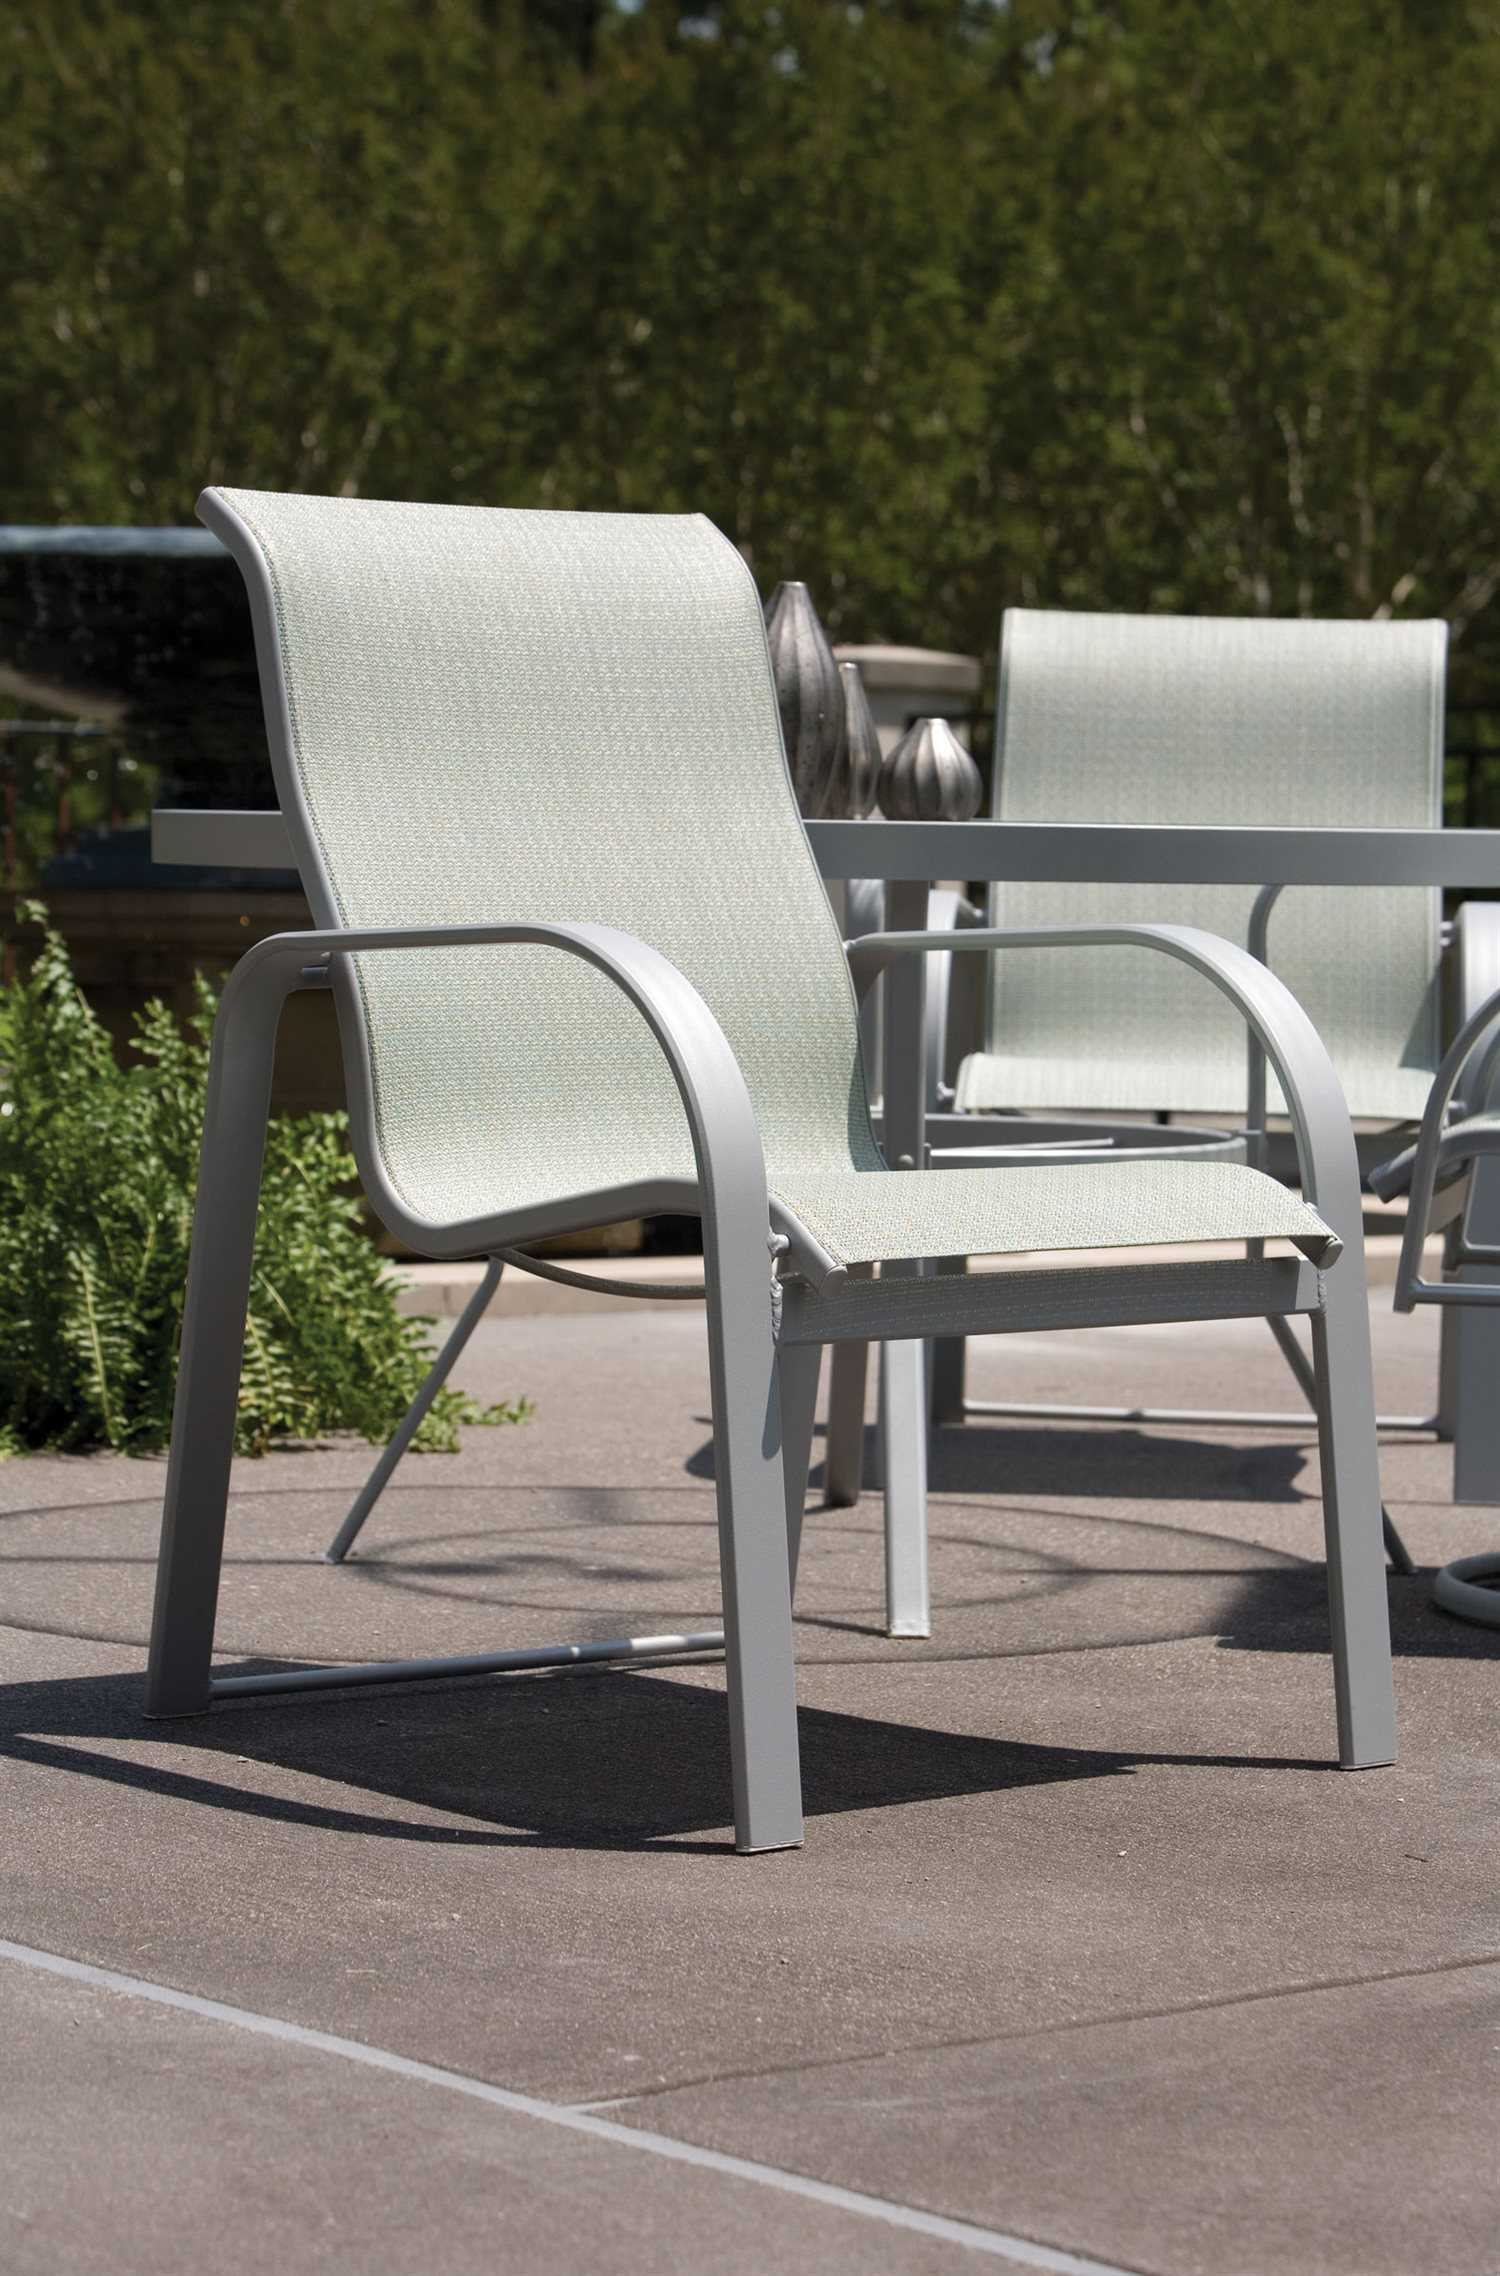 Winston Seagrove II Sling Aluminum High Back Dining Chair